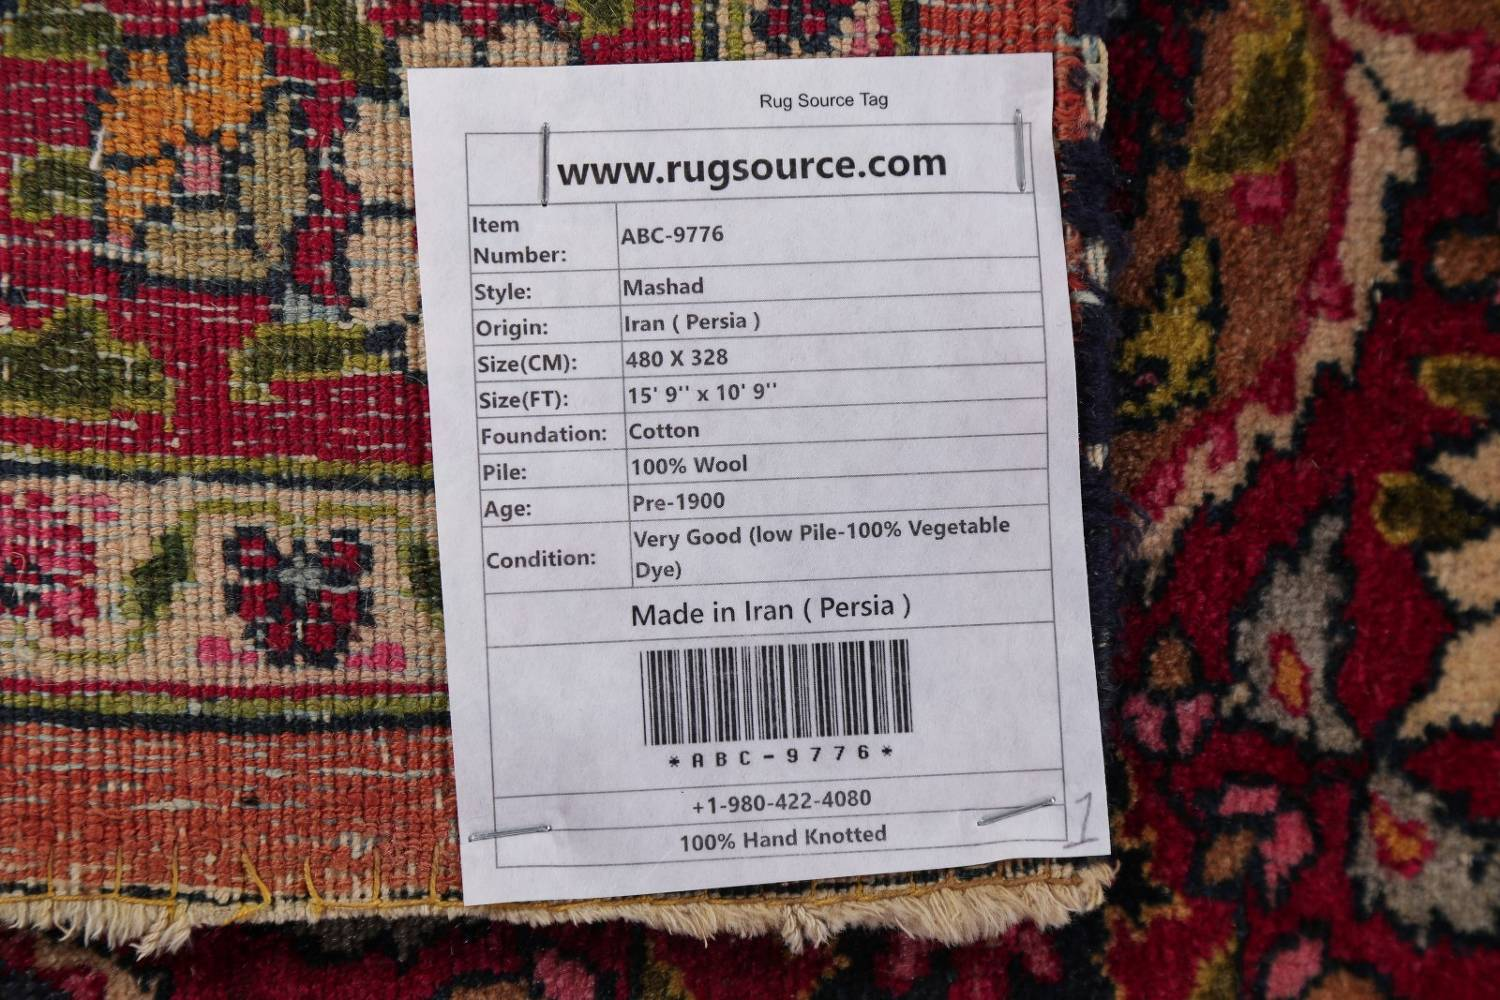 All-Over Floral 11x16 Mashad Persian Area Rug image 32